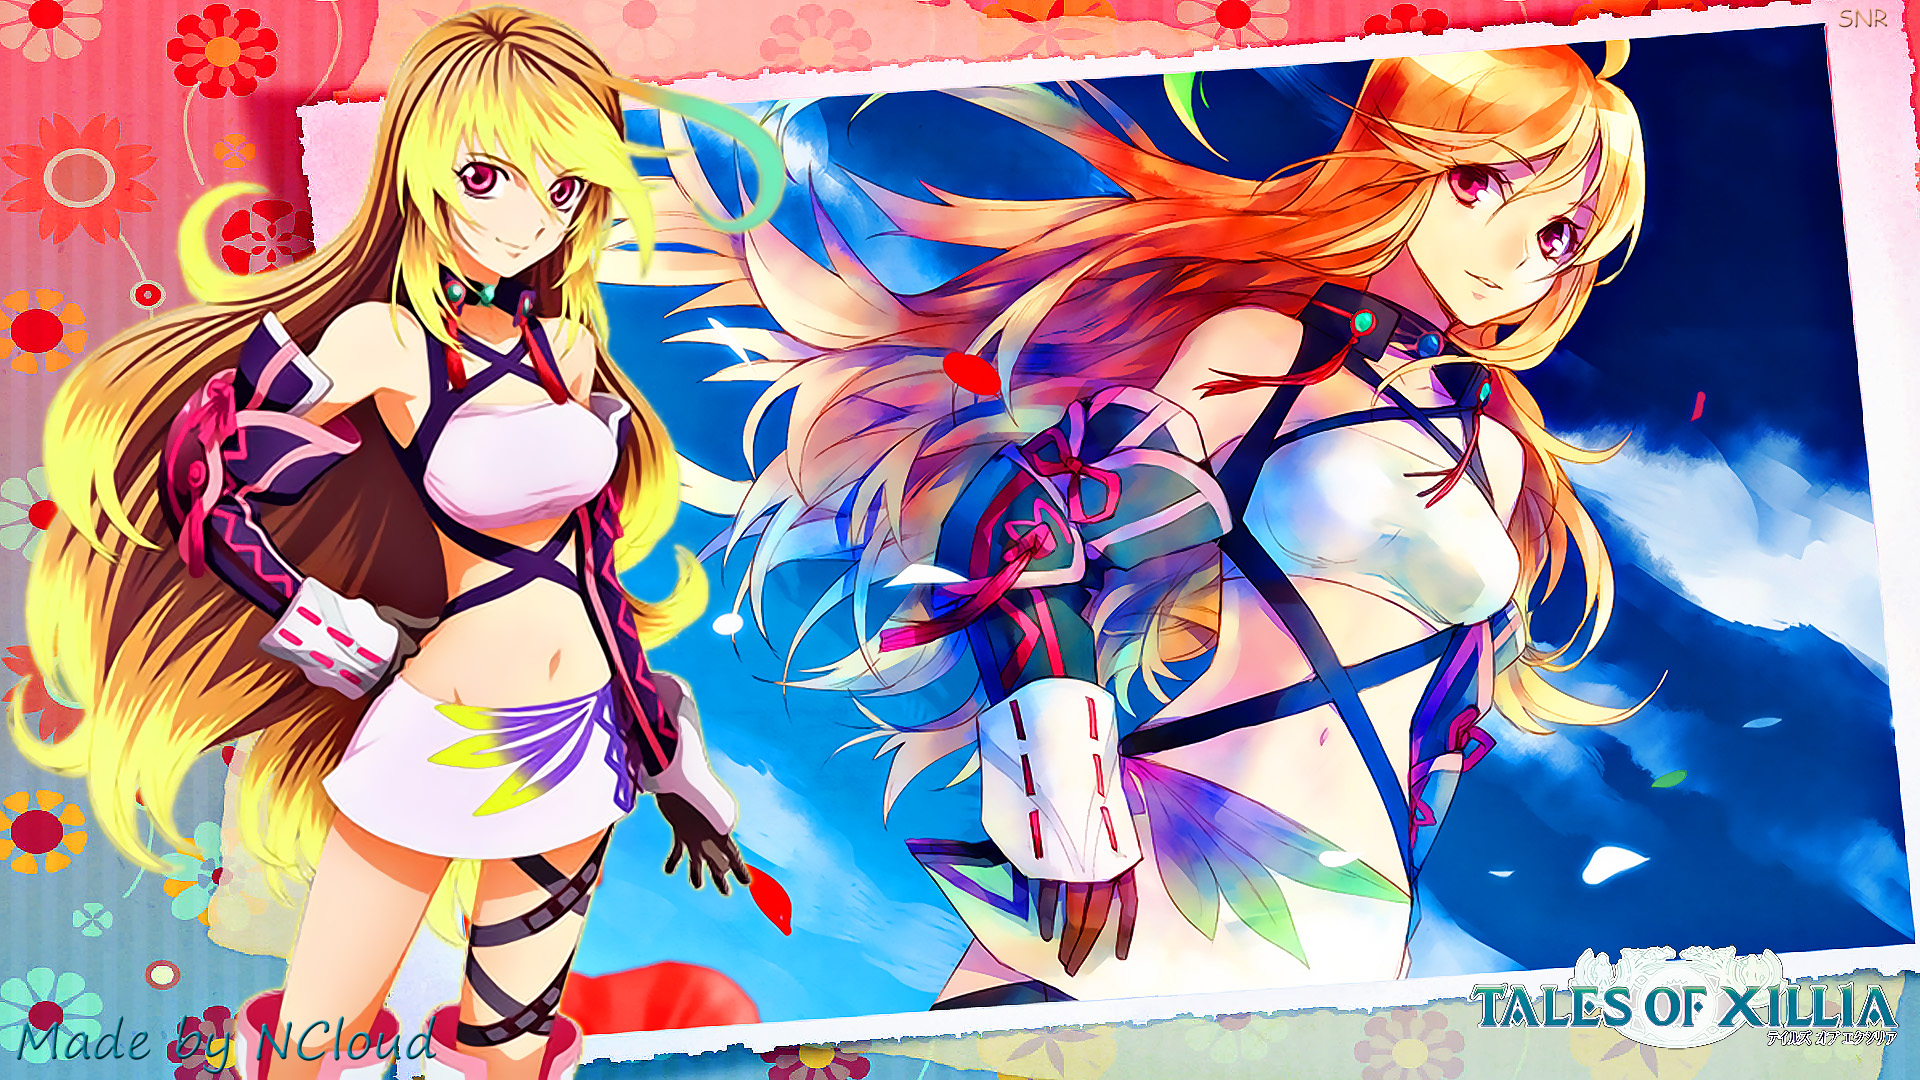 5 Tales Of Xillia HD Wallpapers Backgrounds   Wallpaper 1920x1080